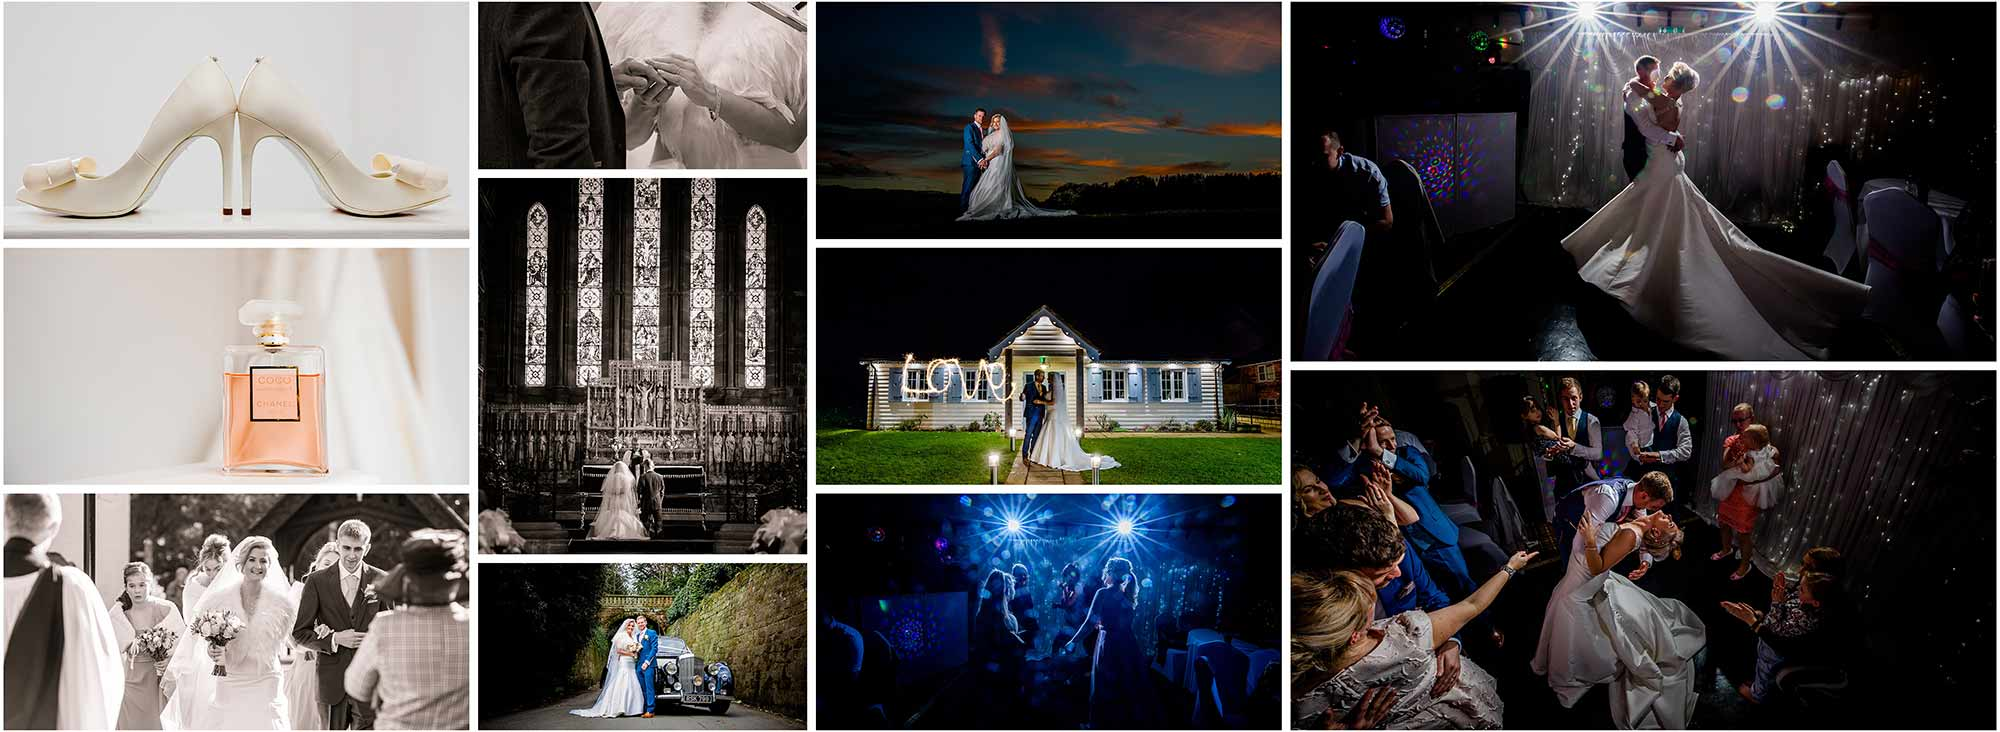 Wedding photography in Wrexham